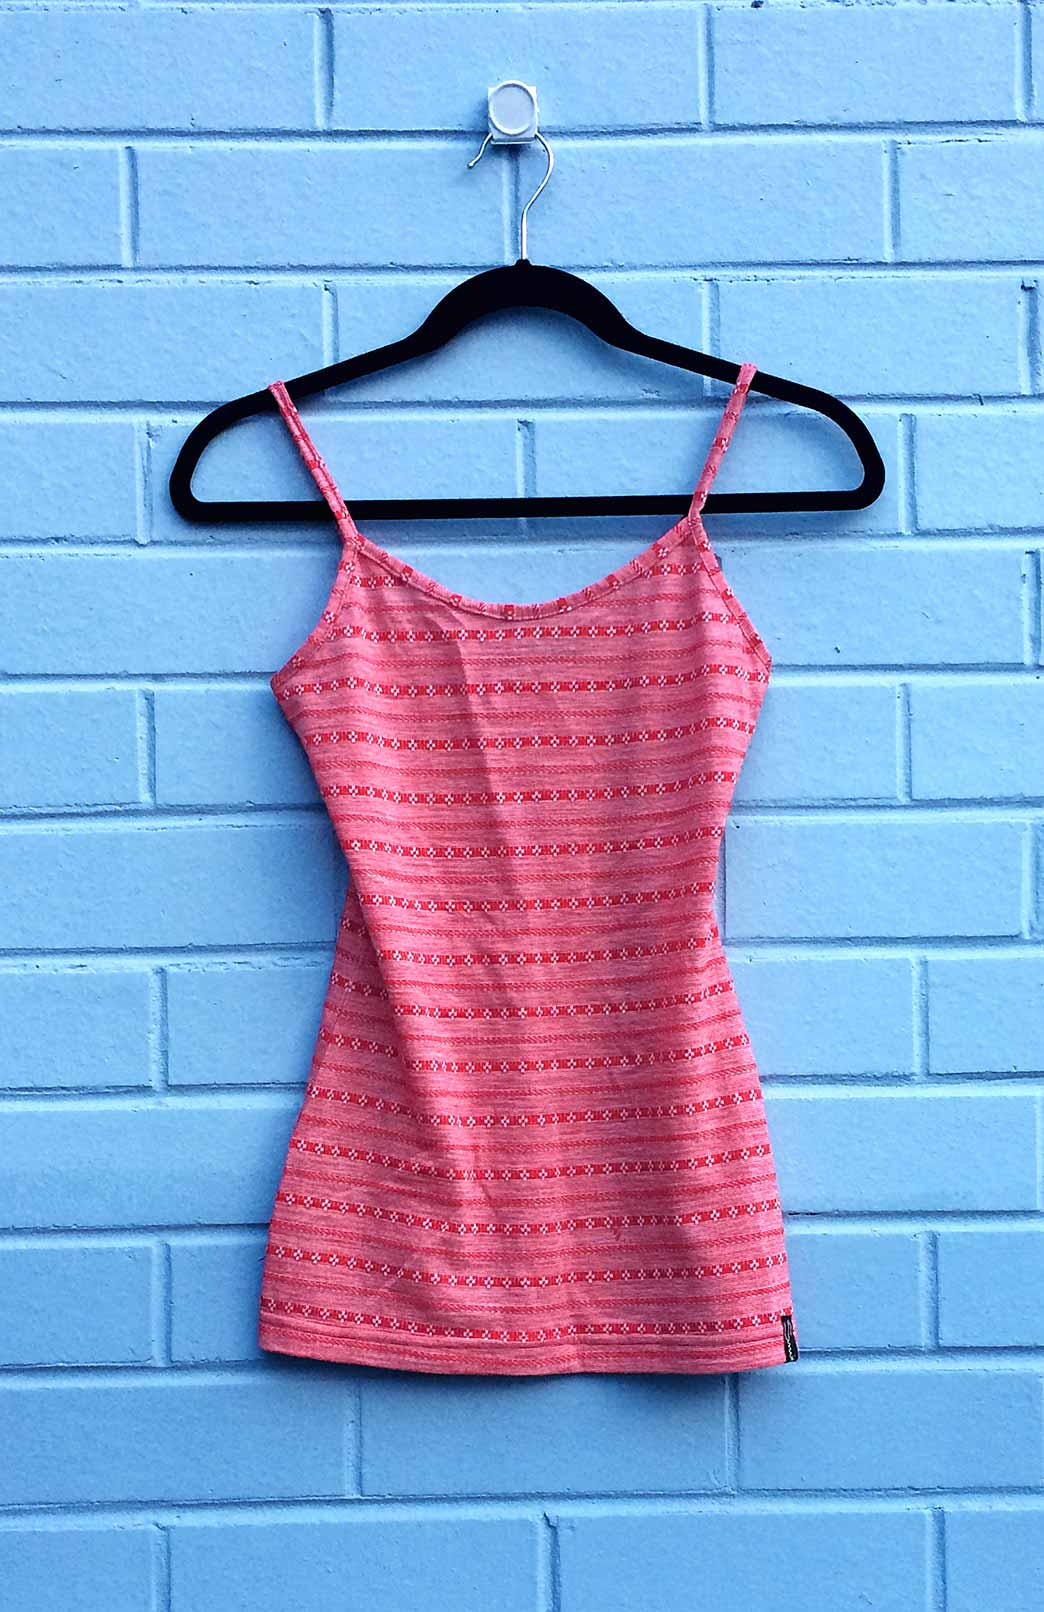 Camisole Top - Women's Wool Patterned Camisole Layering Thermal Tank Top - Smitten Merino Tasmania Australia